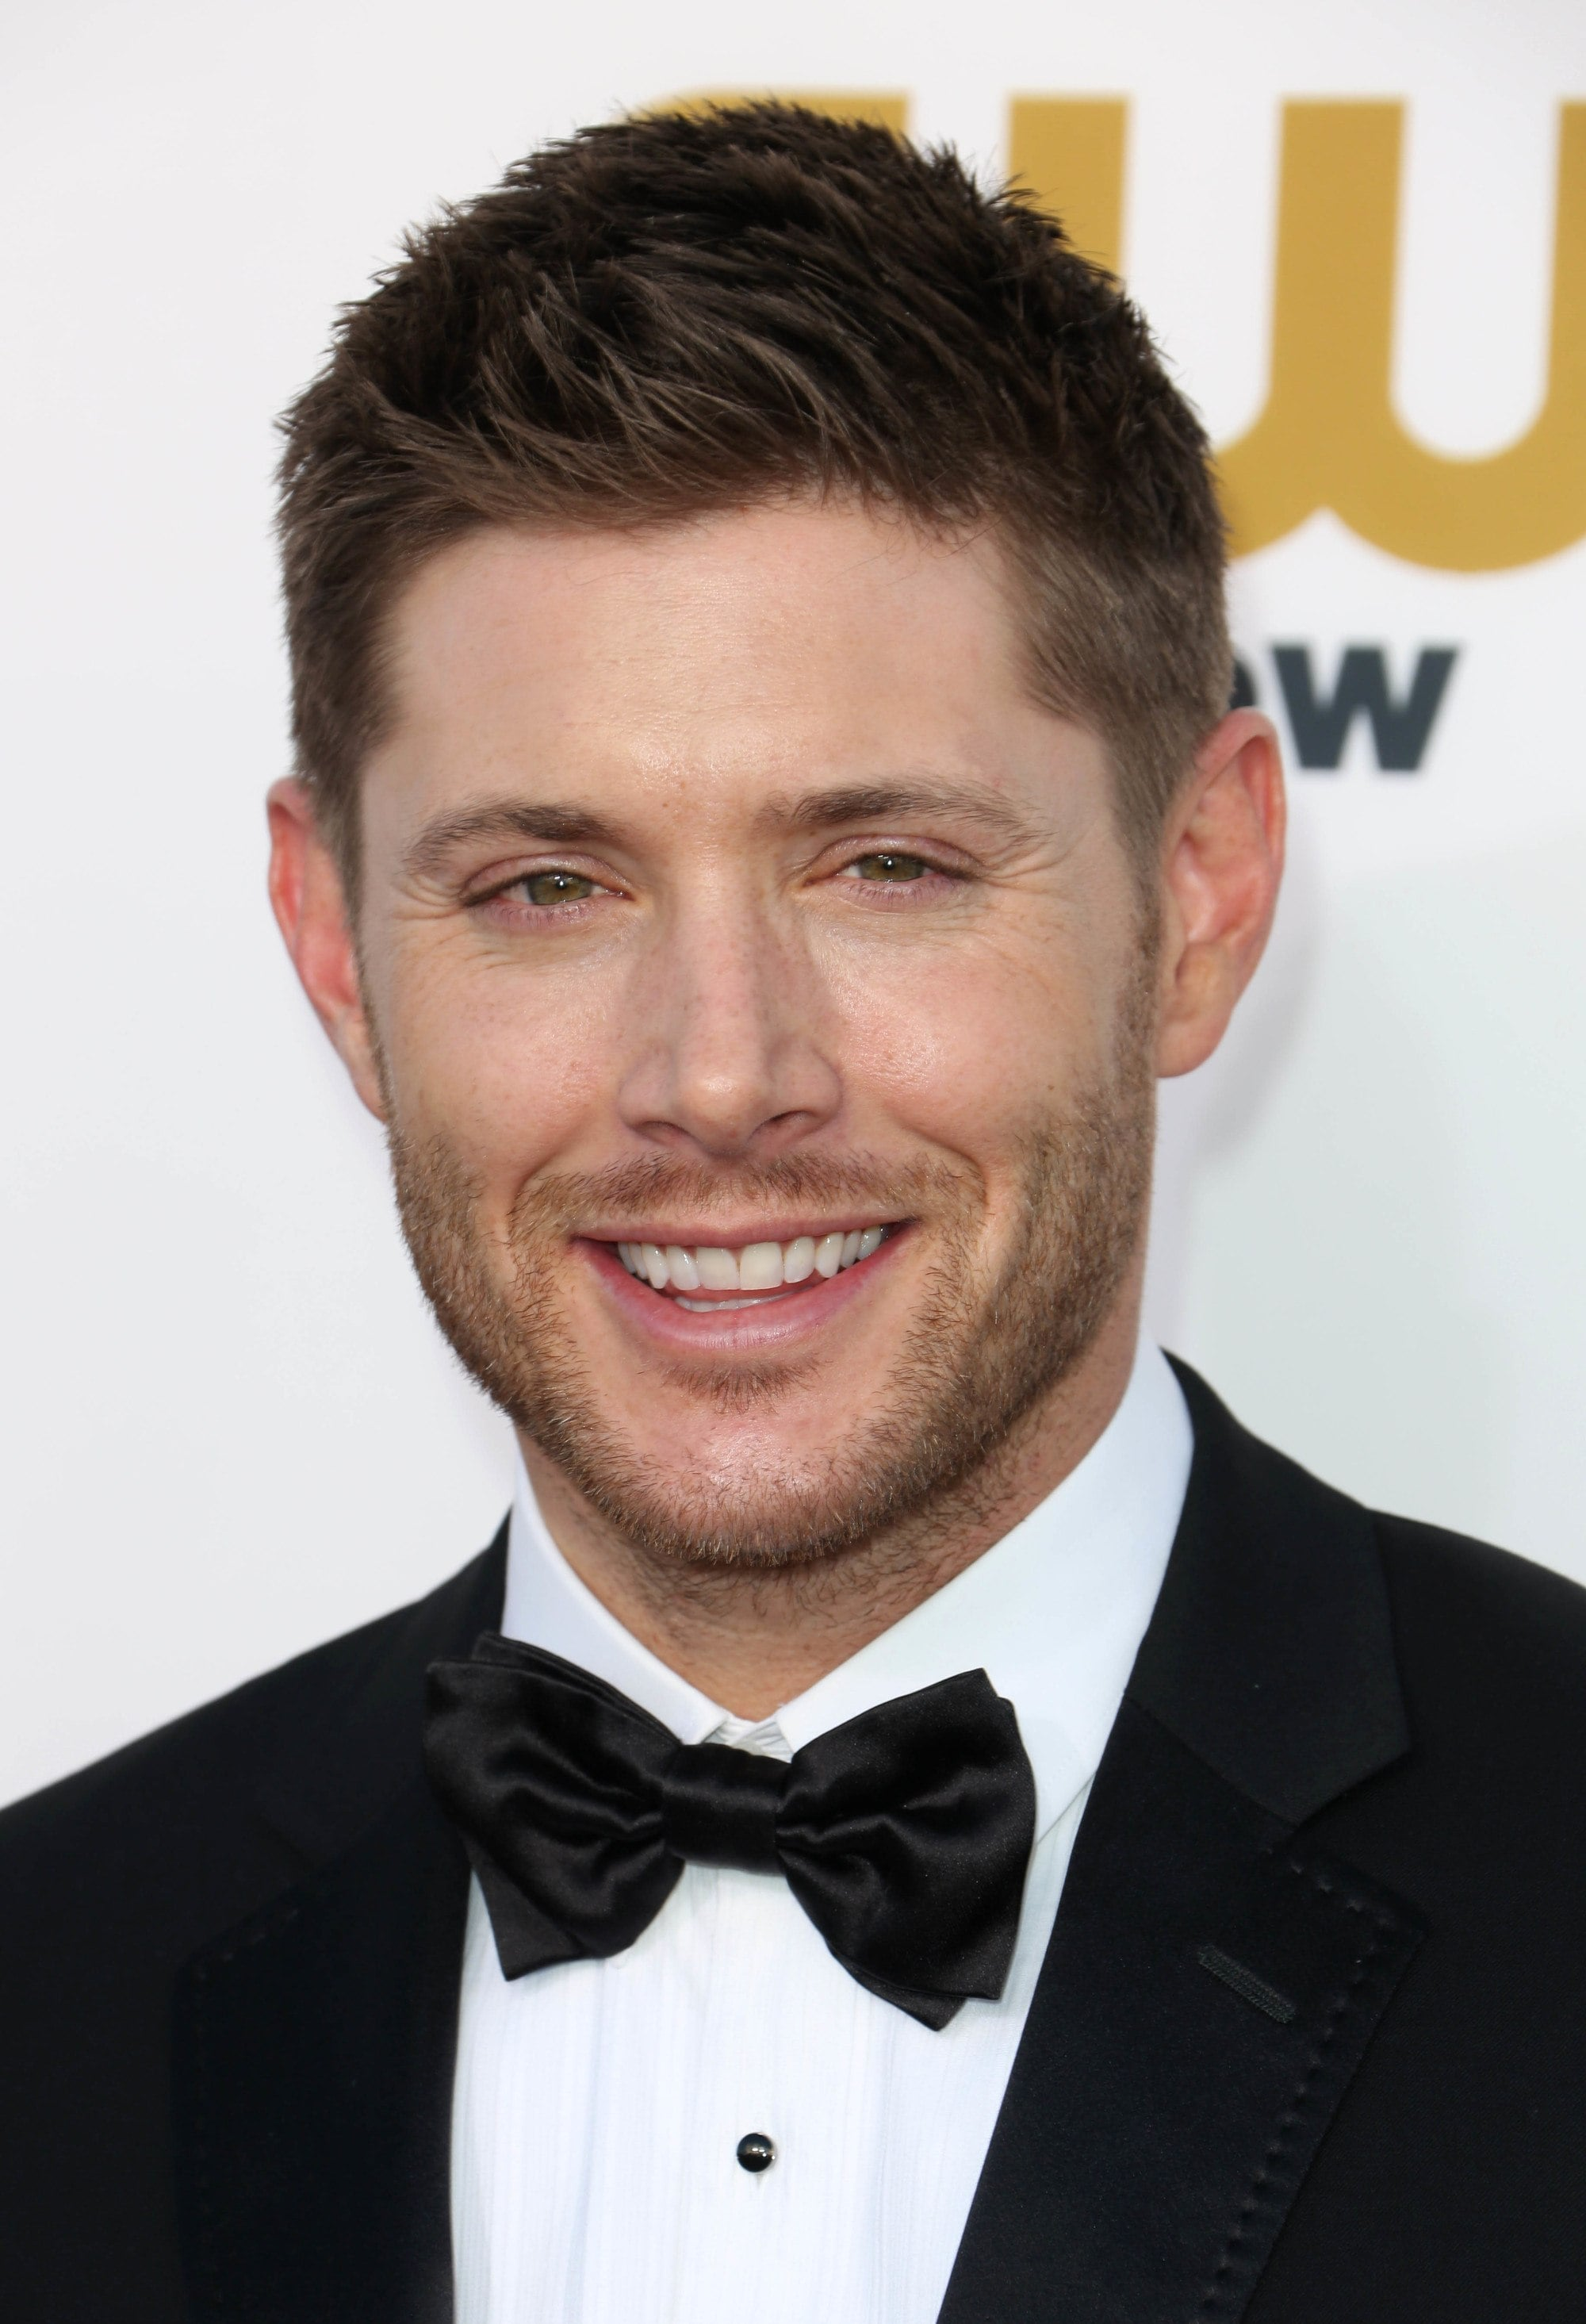 Ivy League haircut: Jensen Ackles with brown hair in a side-swept Ivy League haircut, wearing a tux